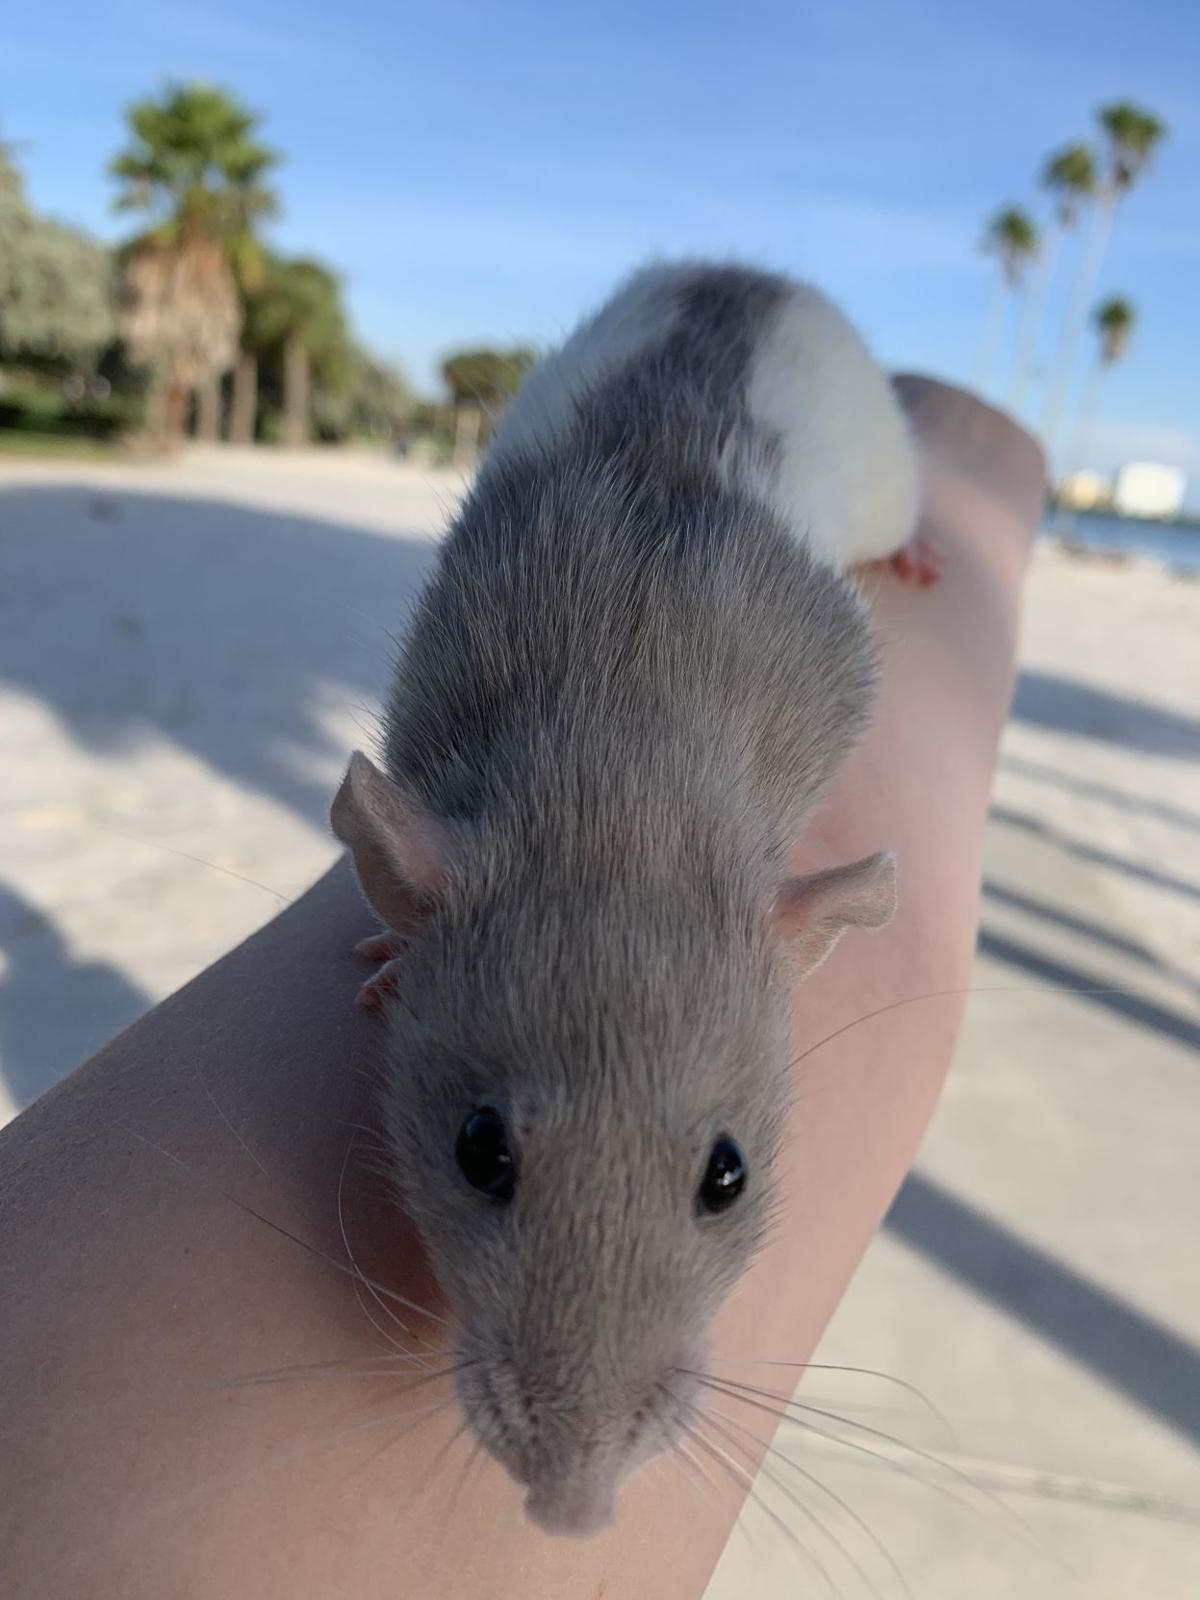 Pet of the Issue: Baby the rat